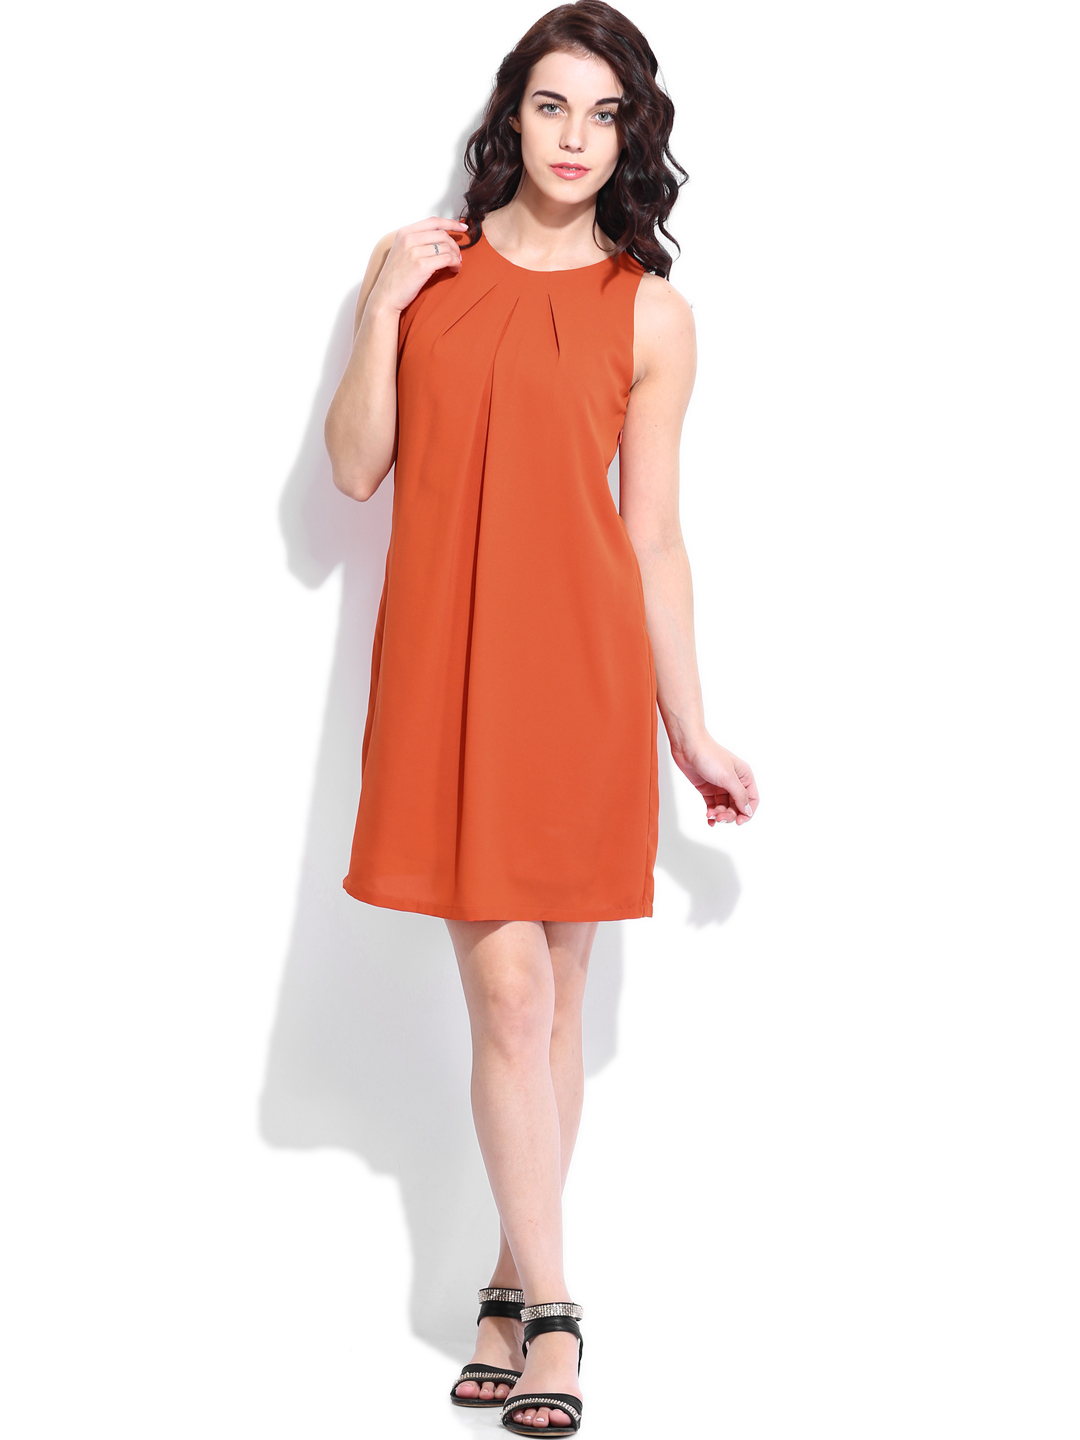 Elegant Van Heusen, Better Known For Its Range Of Mens Clothing And Formal Wear, Is Finding The Market In Metros Saturating The Brand Recently Launched A Range Of Clothing For Women, With Focus On